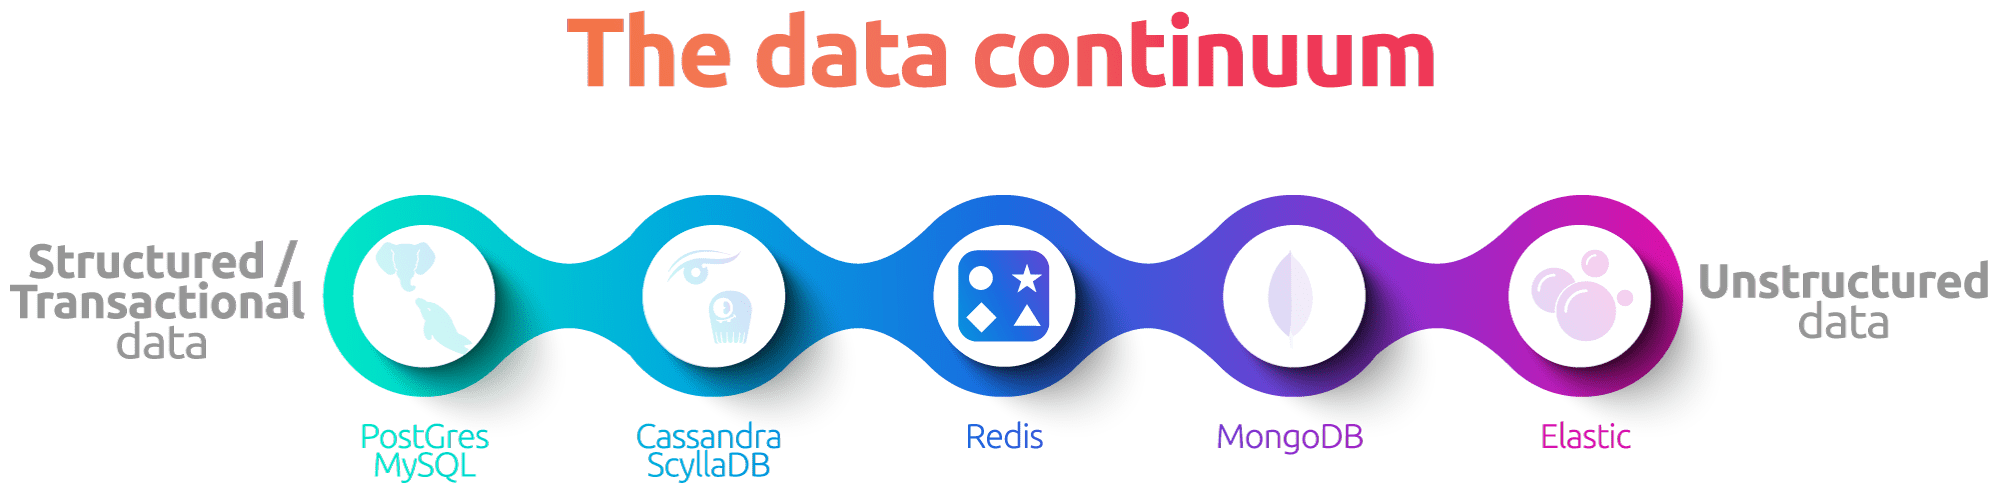 Redis on the continuum from structured to unstructured data